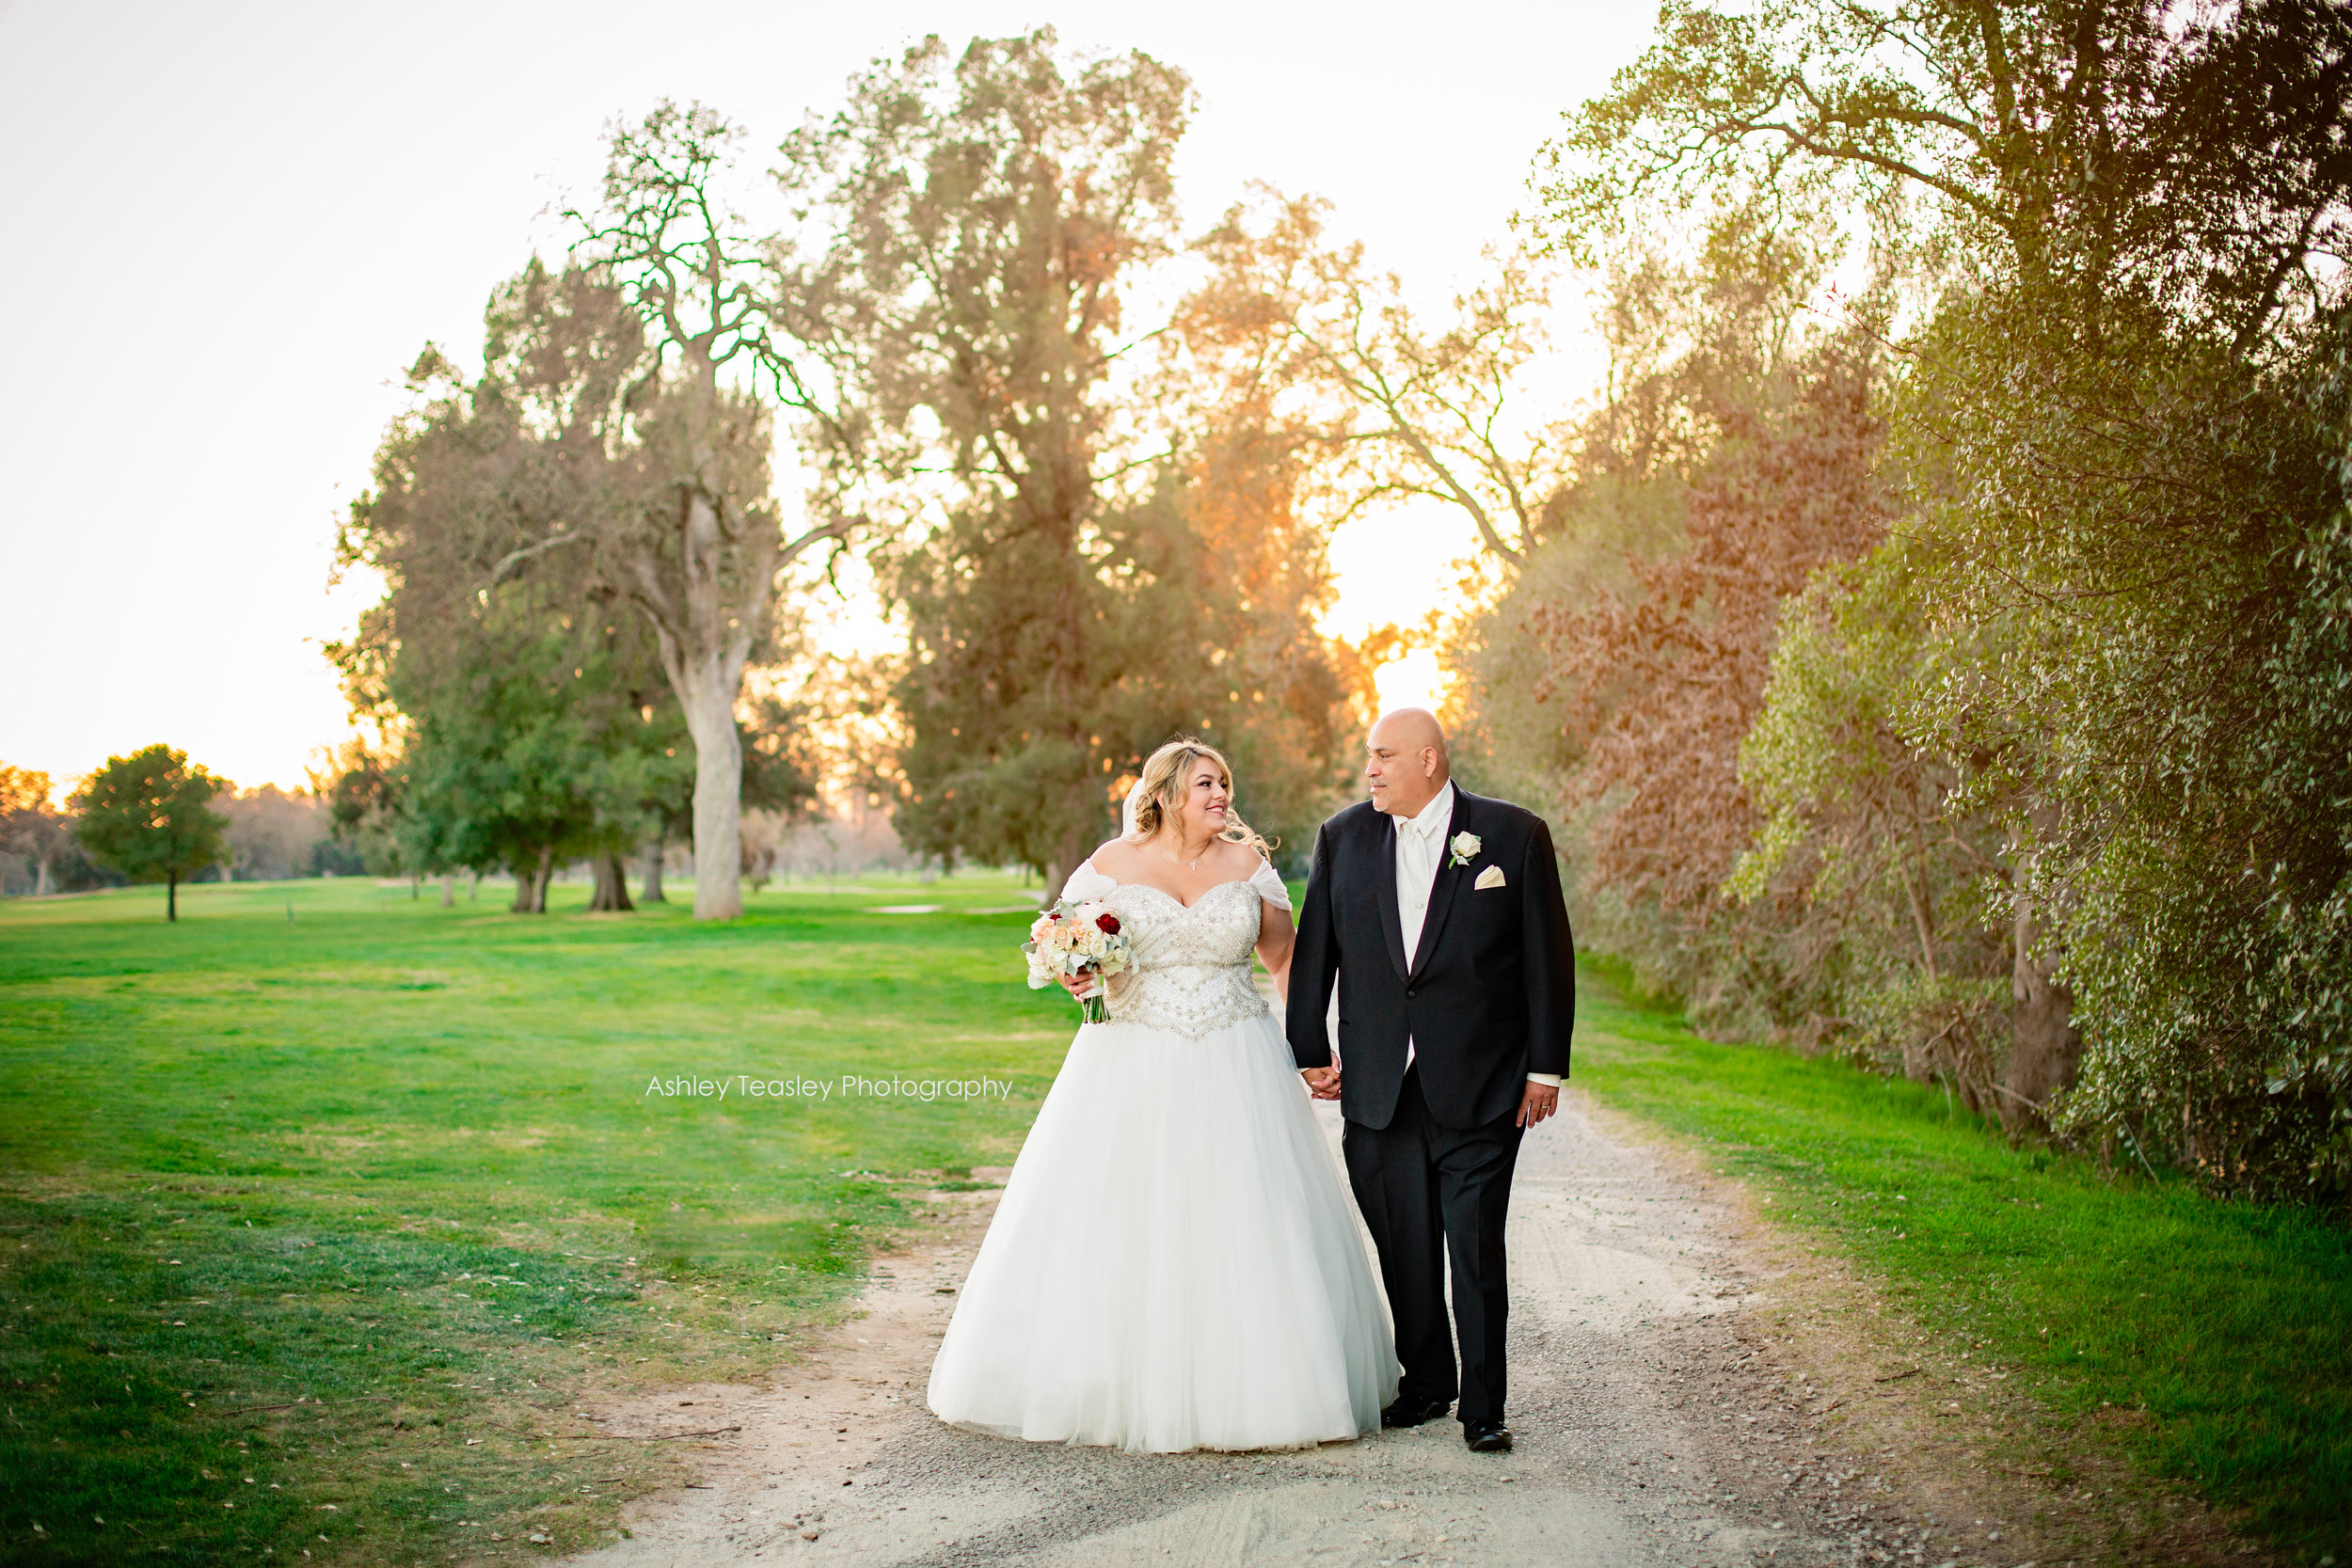 Regina & Mike - The Pavillion at Hagan Oaks - Sacramento Wedding Photographer - Ashley Teasley Photography--2.JPG